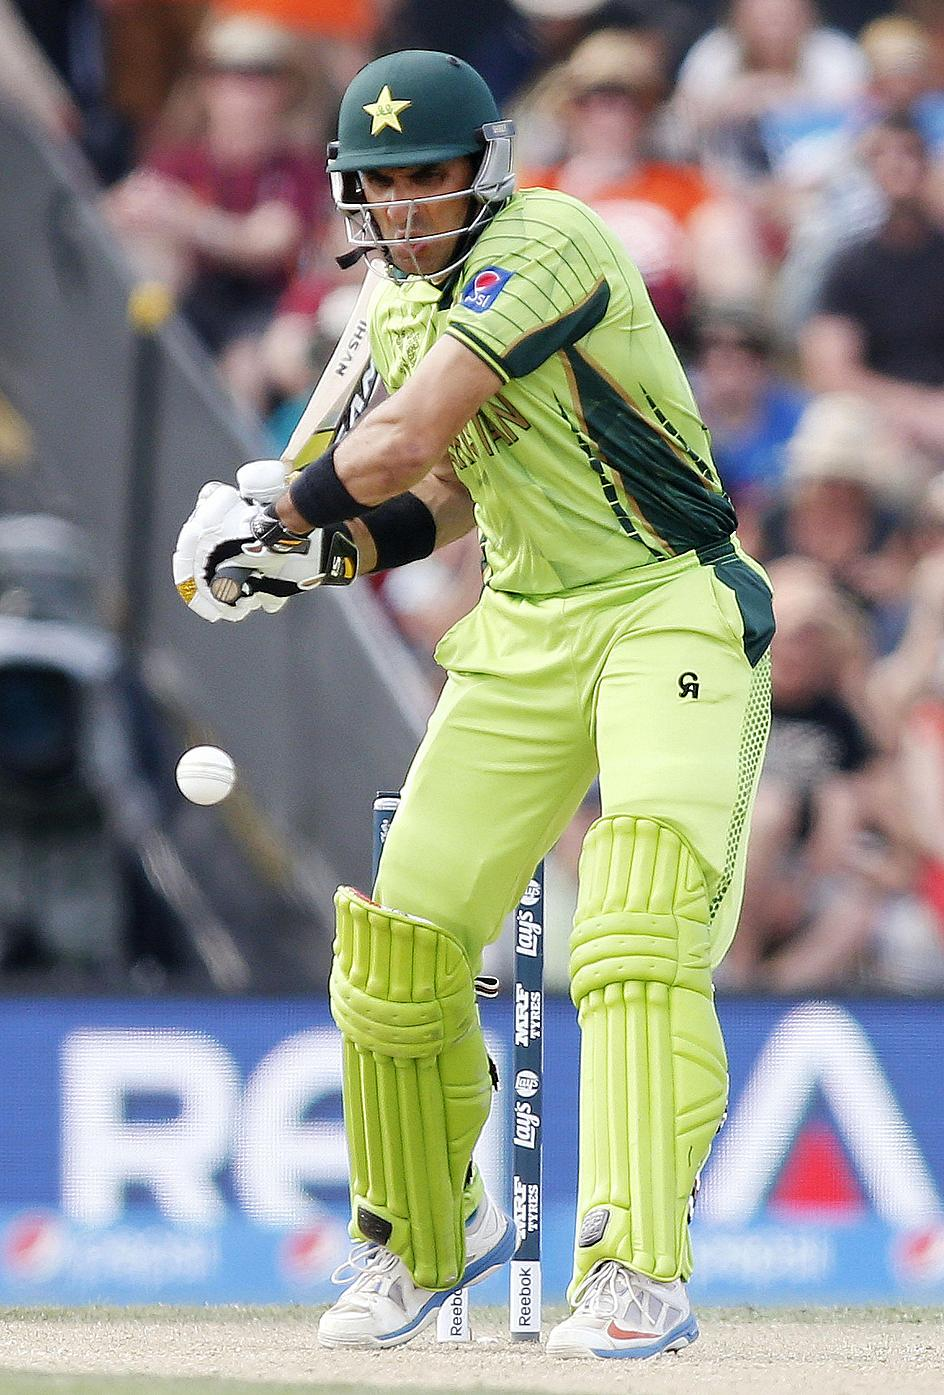 Win Over South Africa Gave Us Belief - Misbah-Ul-Haq